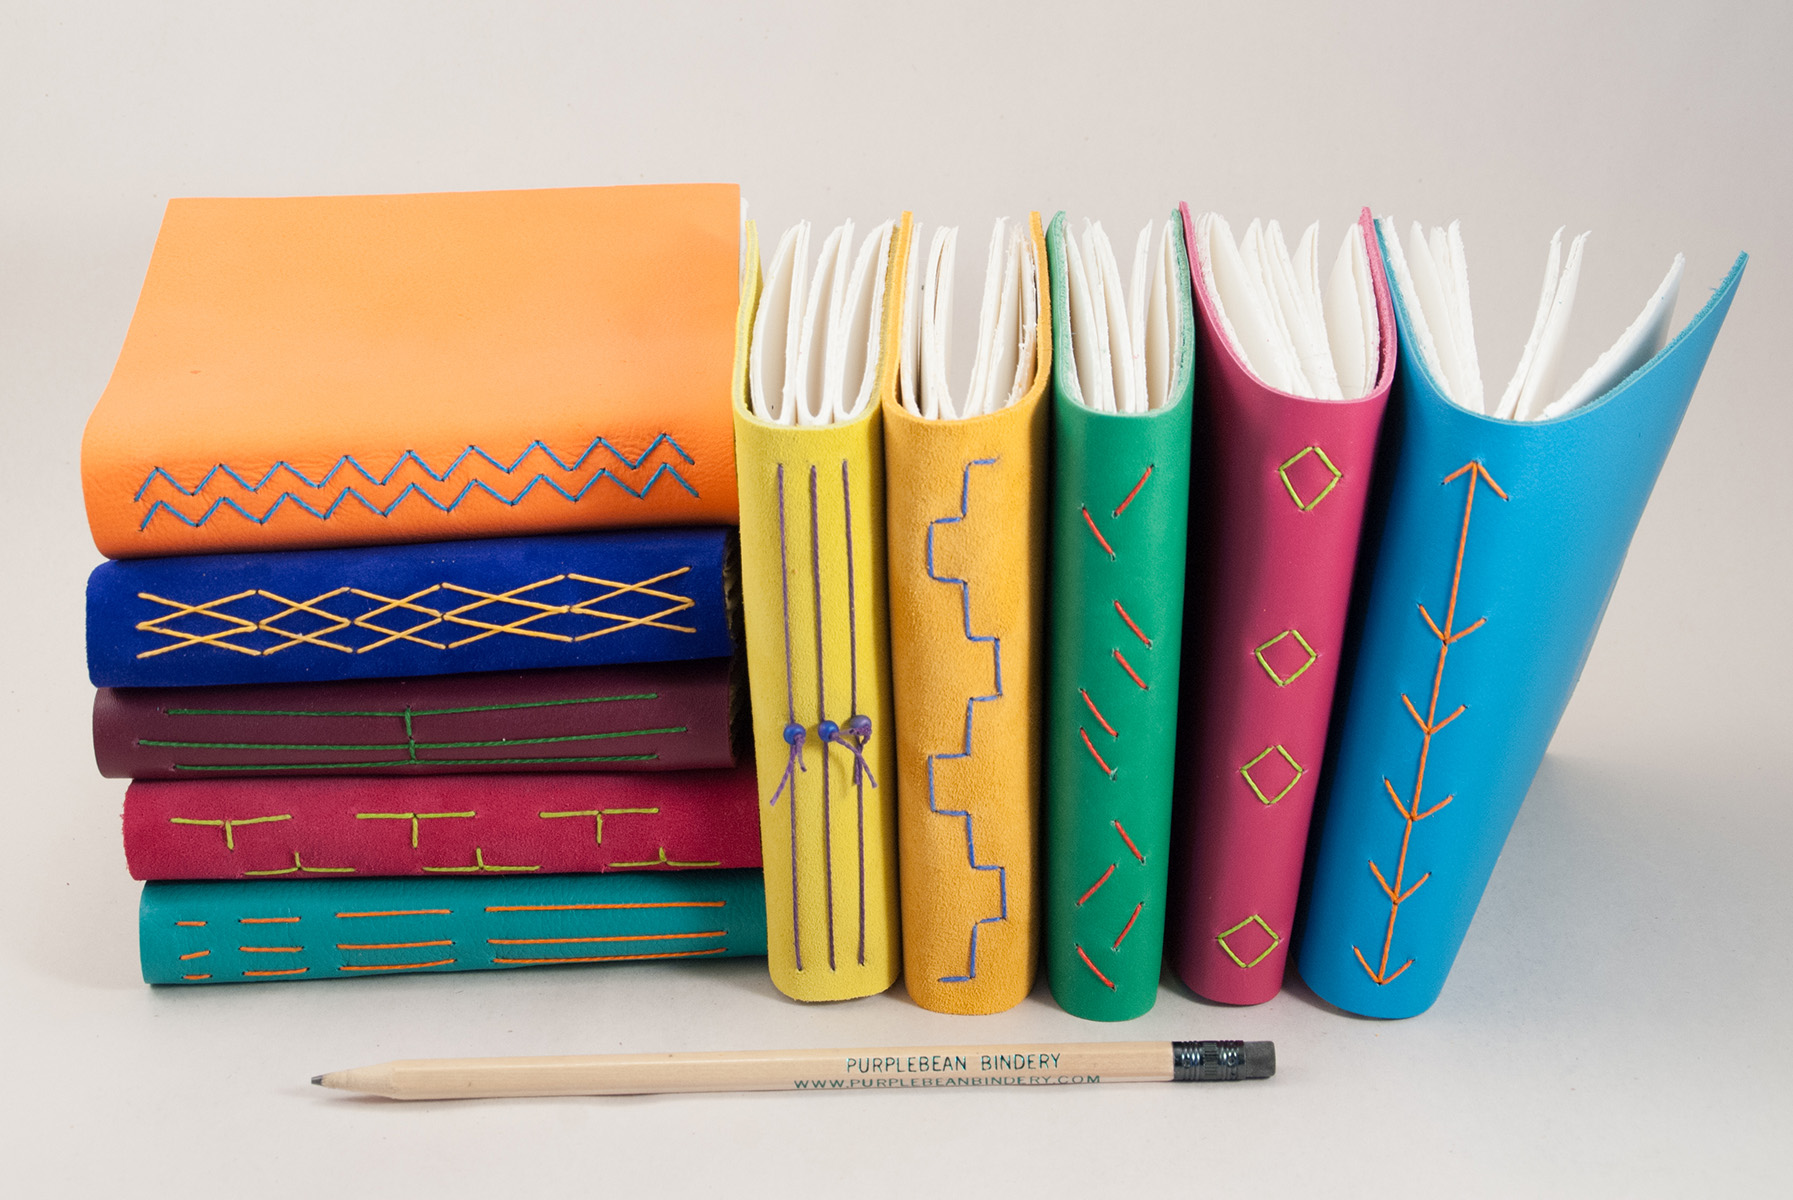 FEATURED MEMBER ARTIST – OCTOBER: PURPLEBEAN BINDERY